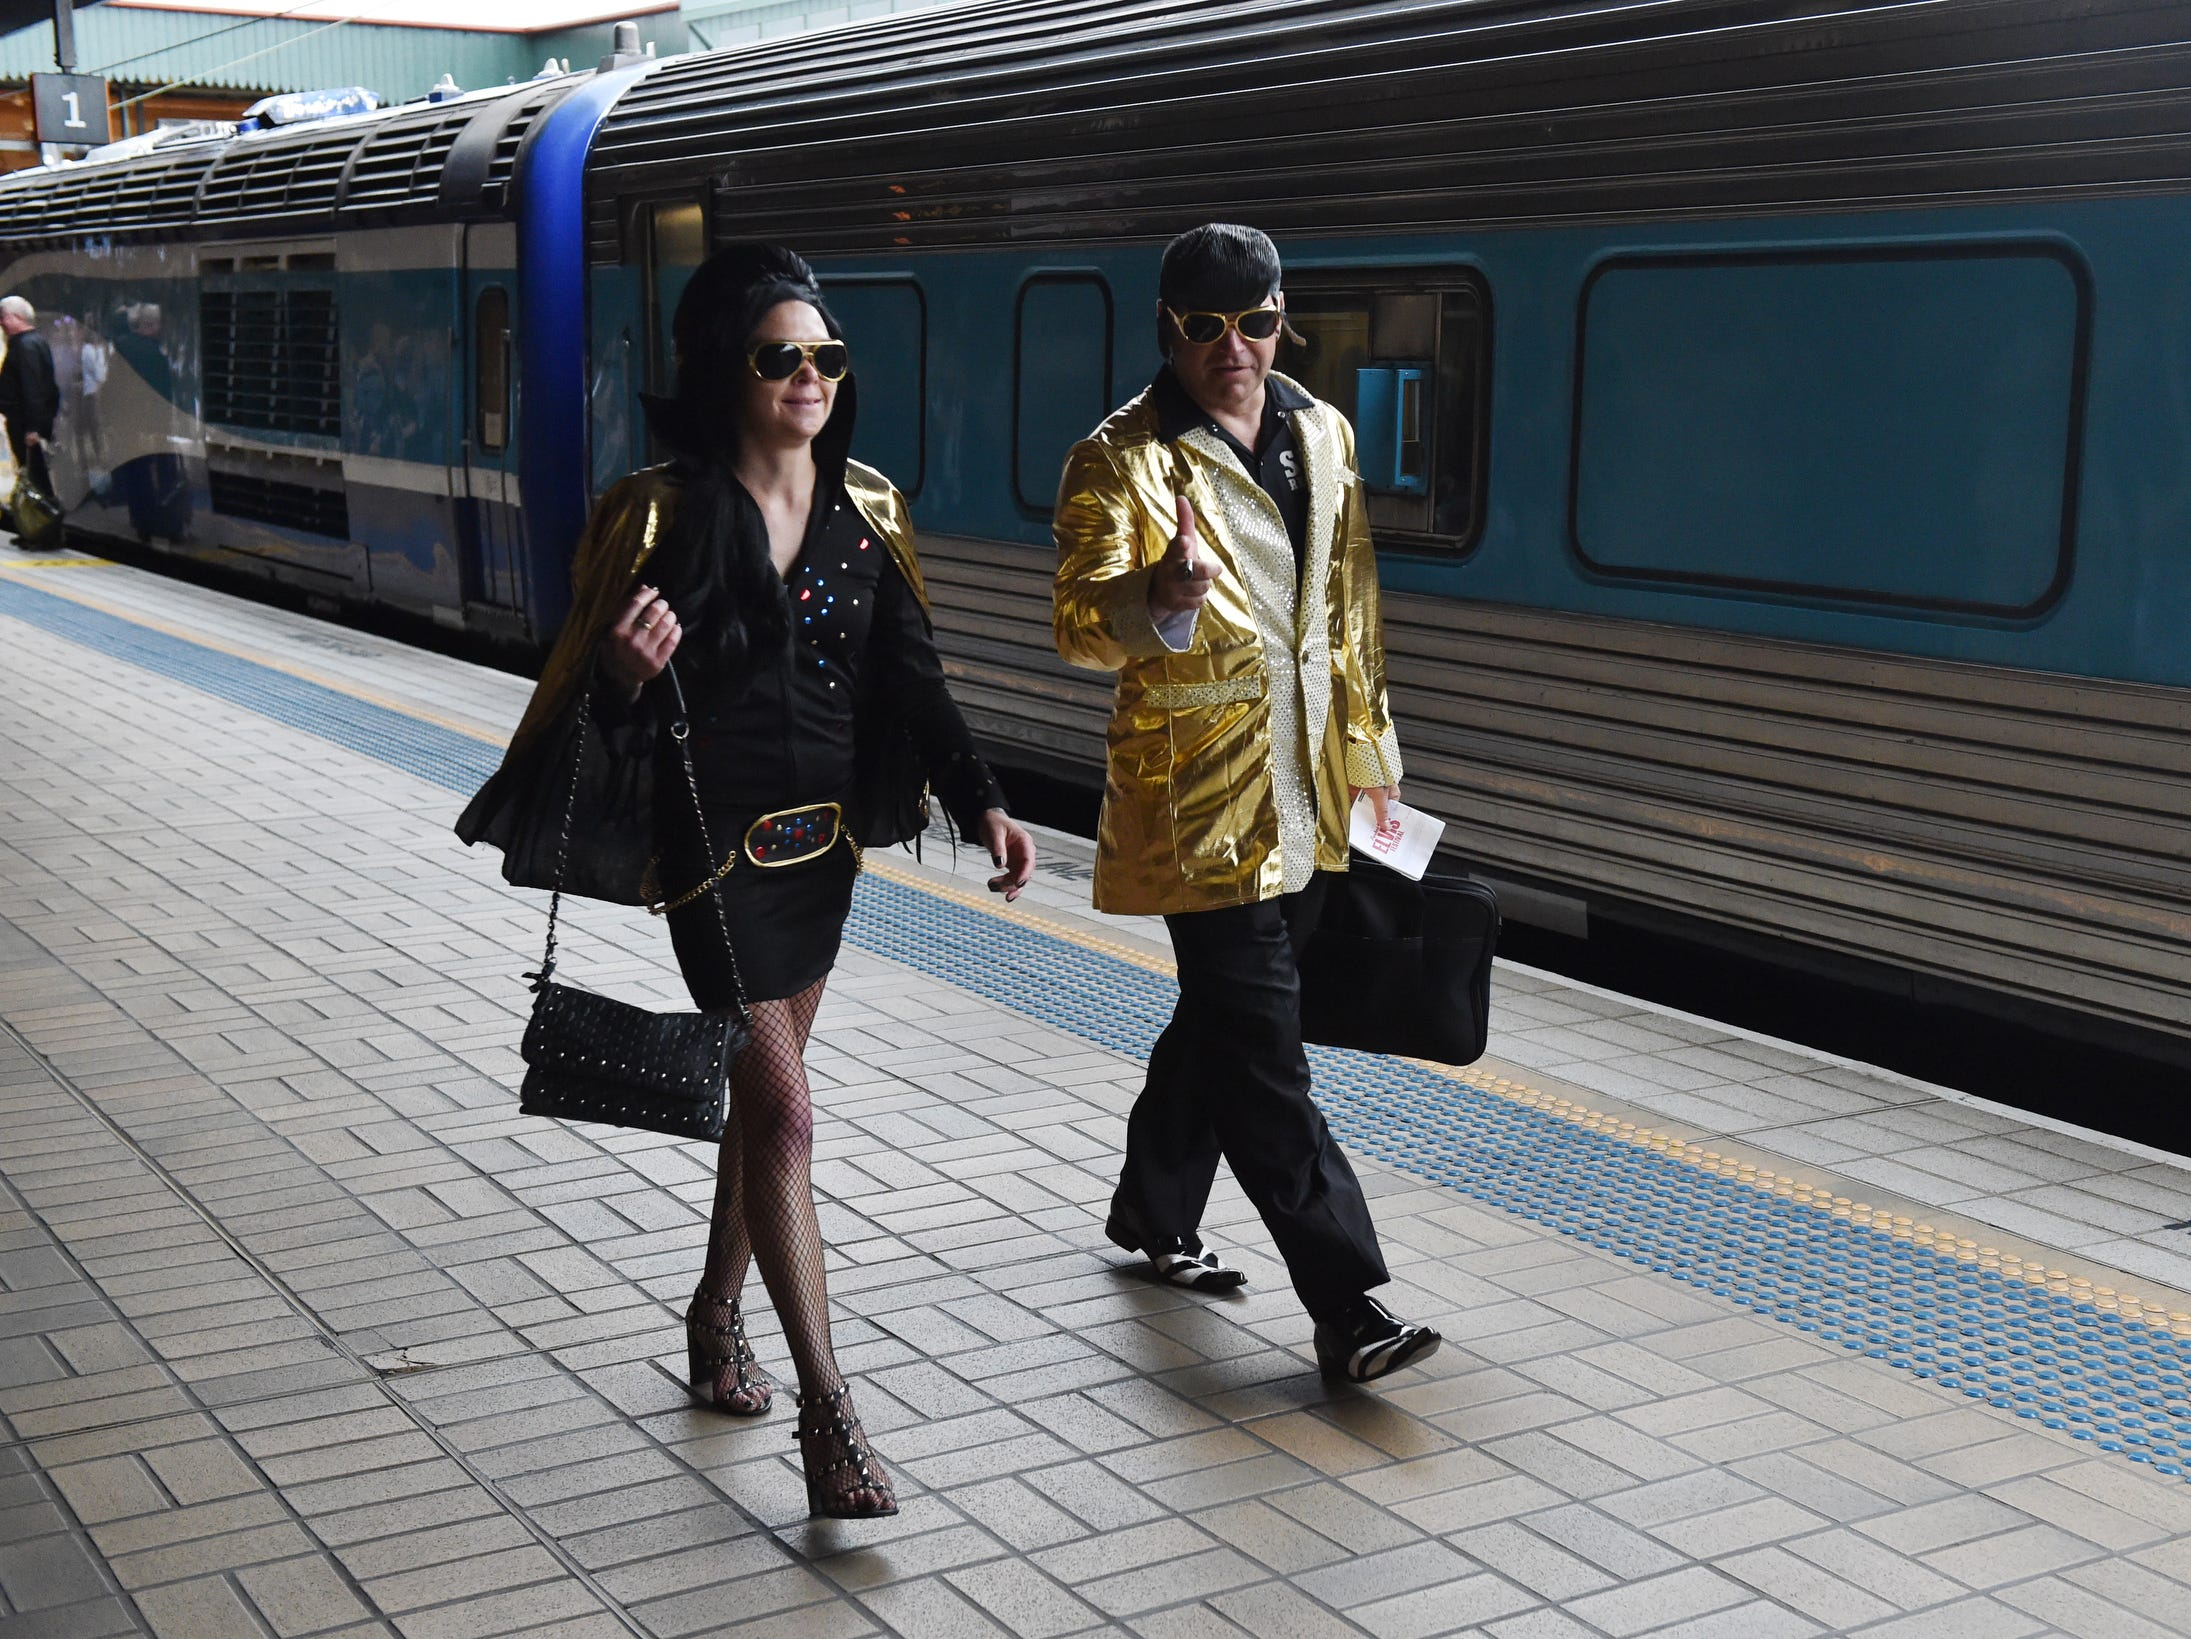 Elvis impersonators and fans board the Elvis Express at Central Station.